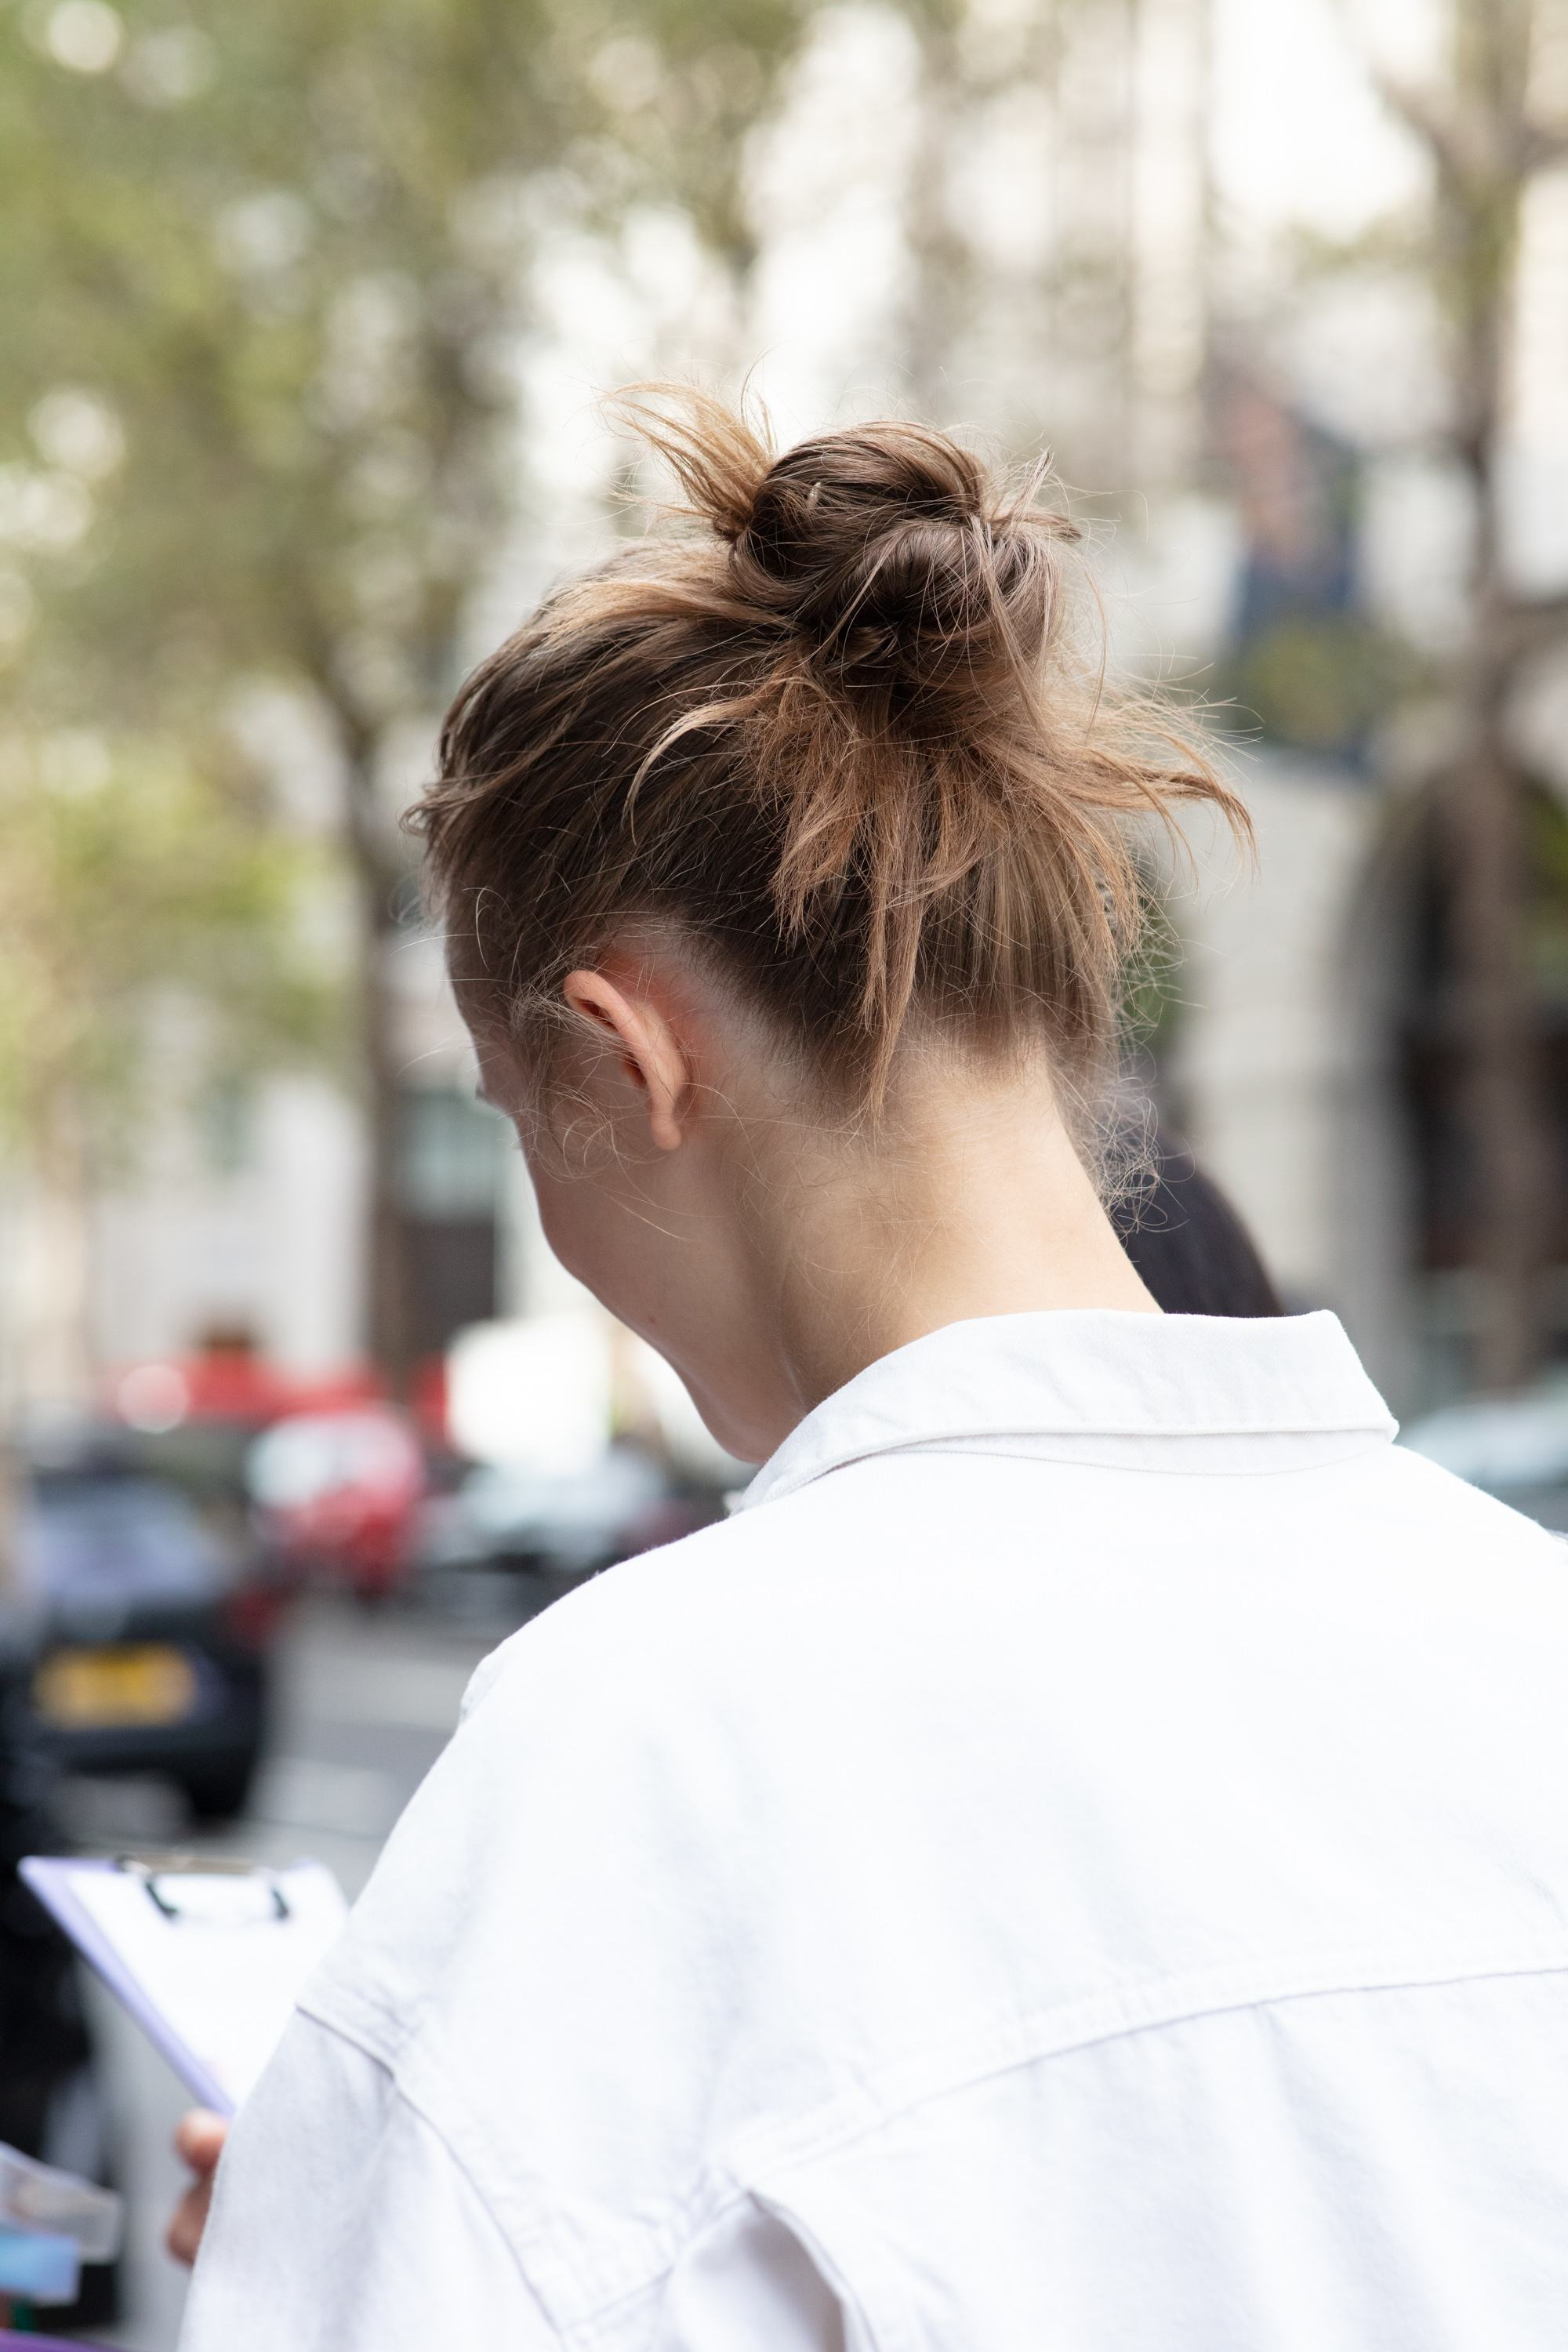 London Fashion Week street style hair: Close up shot of a woman with medium brown hair styled into a messy bun with loose strands sticking out to resemble an octopus, wearing white and posing for a photo